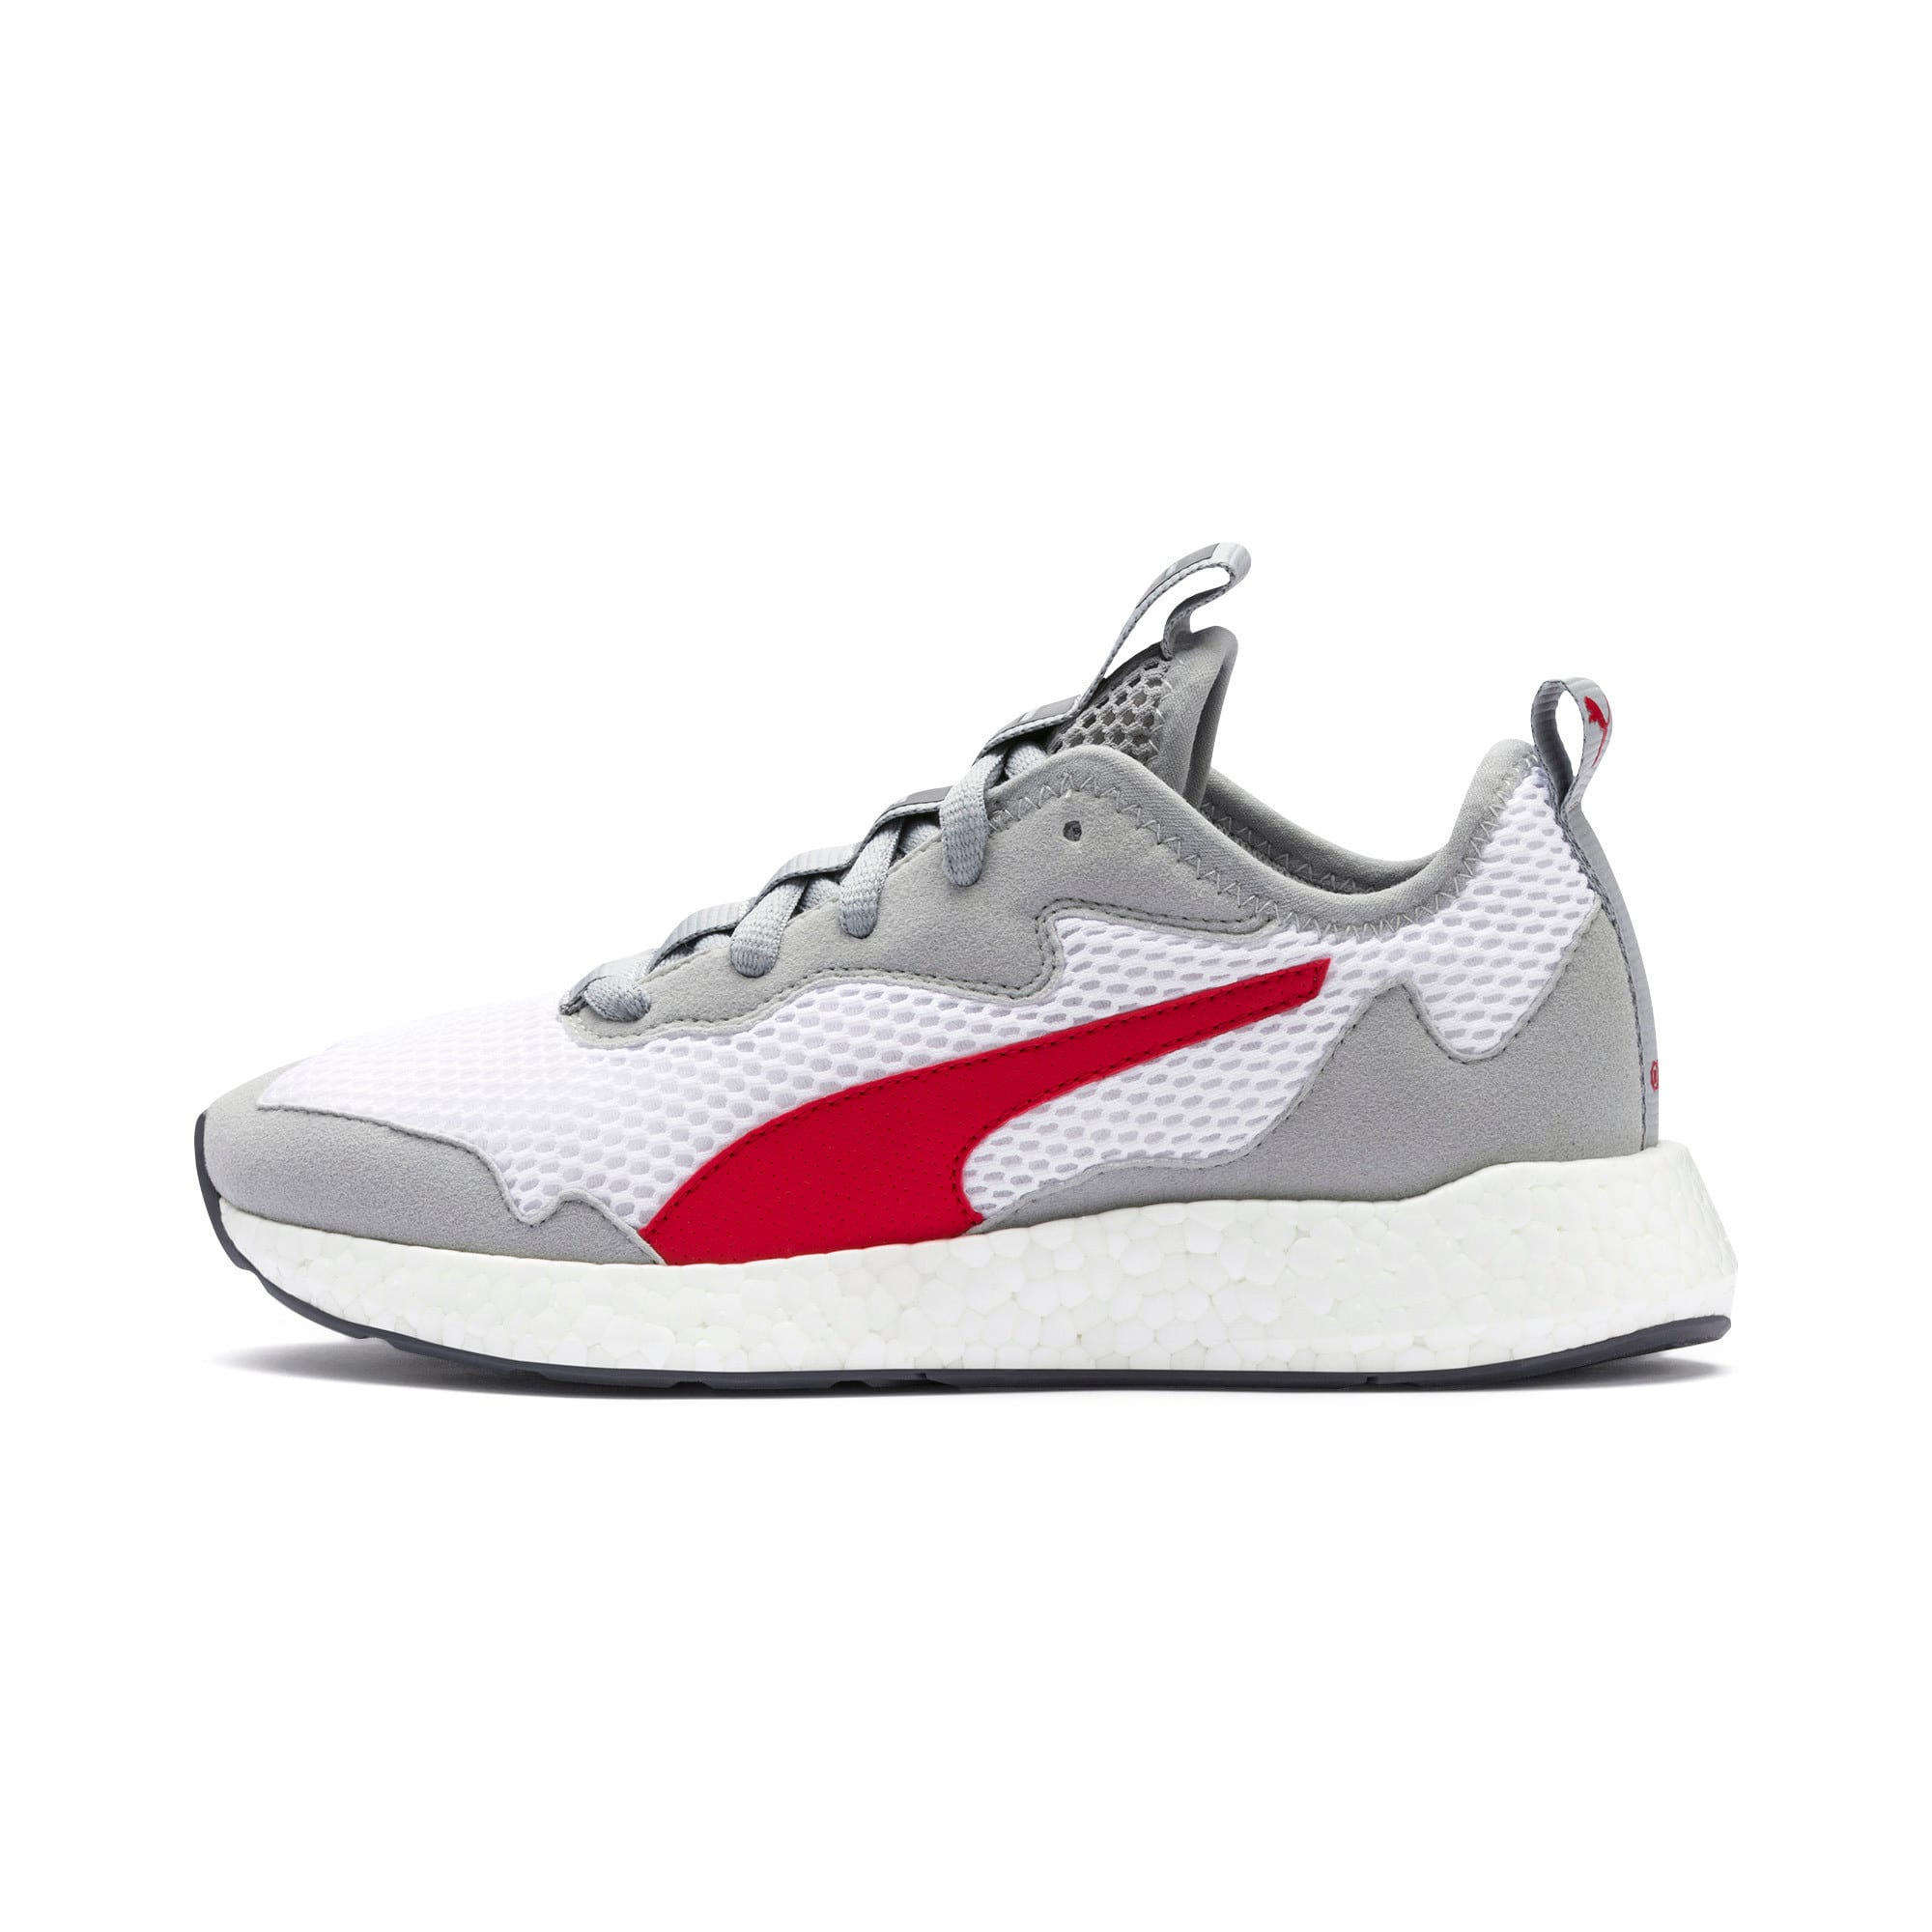 Thumbnail 1 of NRGY Neko Skim Youth Sneaker, White-H Rise-CASTLEROCK-Red, medium